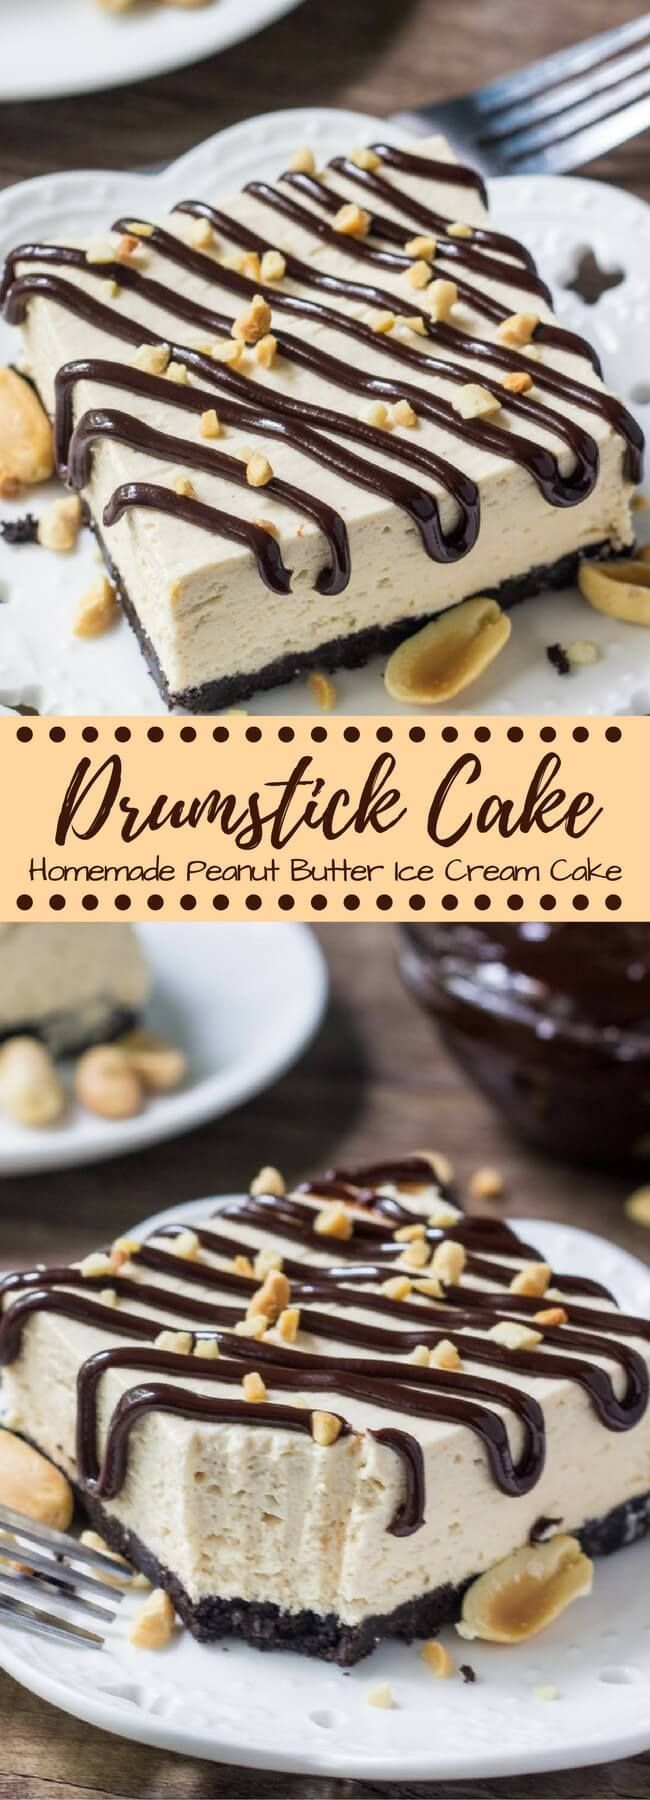 Drumstick cake is an easy, homemade, no bake peanut butter ice cream cake with all the flavor of drumstick ice cream cones. With an Oreo crust, fudge sauce & peanuts - if you love buster bars you defi (Chocolate Frosting No Butter)